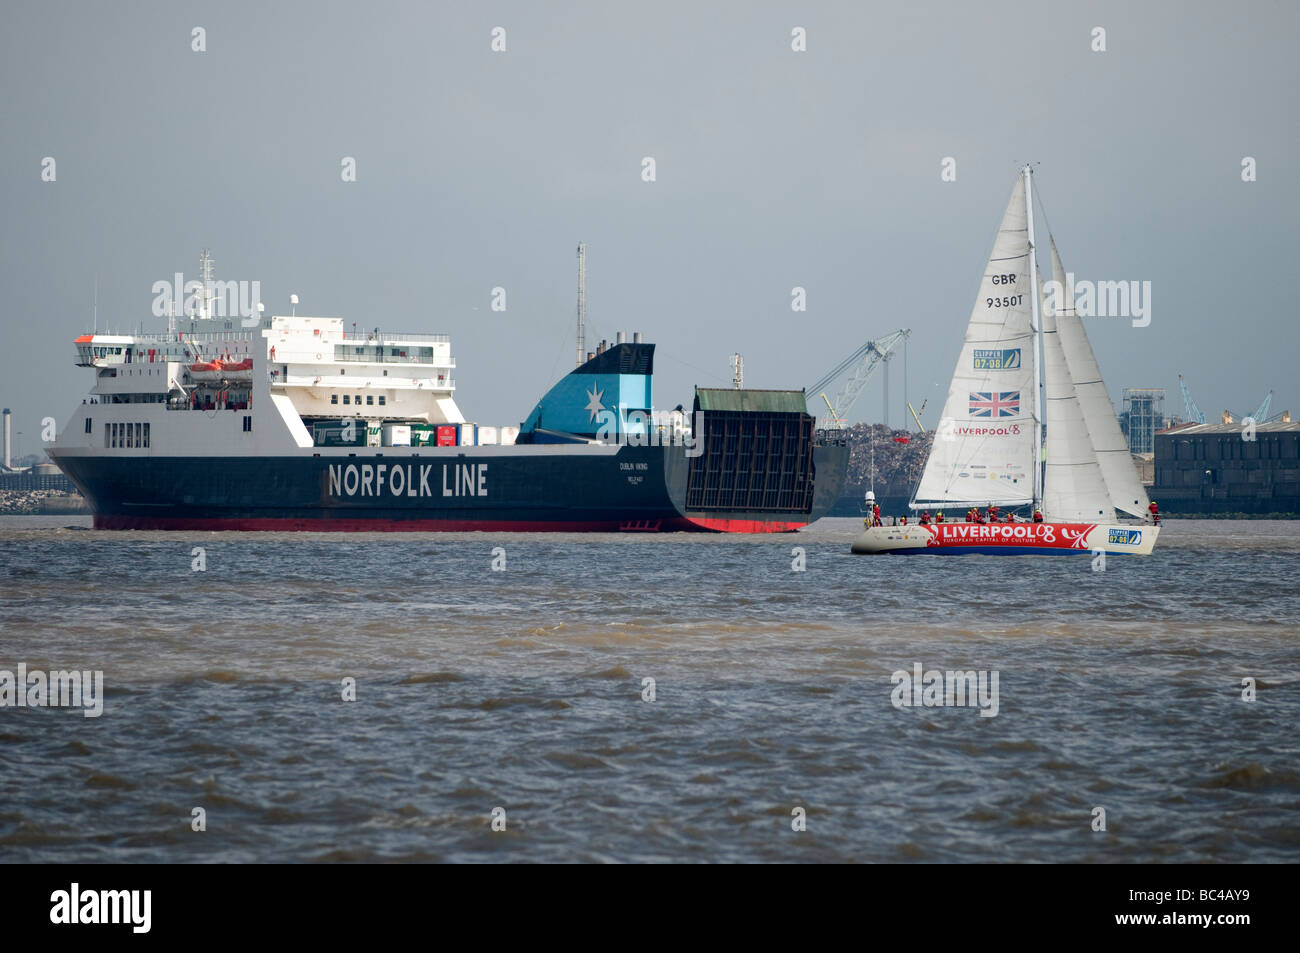 Clipper yacht Race Sailing boat next to Norfolk Line Ferry from Liverpool to Ireland on River Mersey - Stock Image